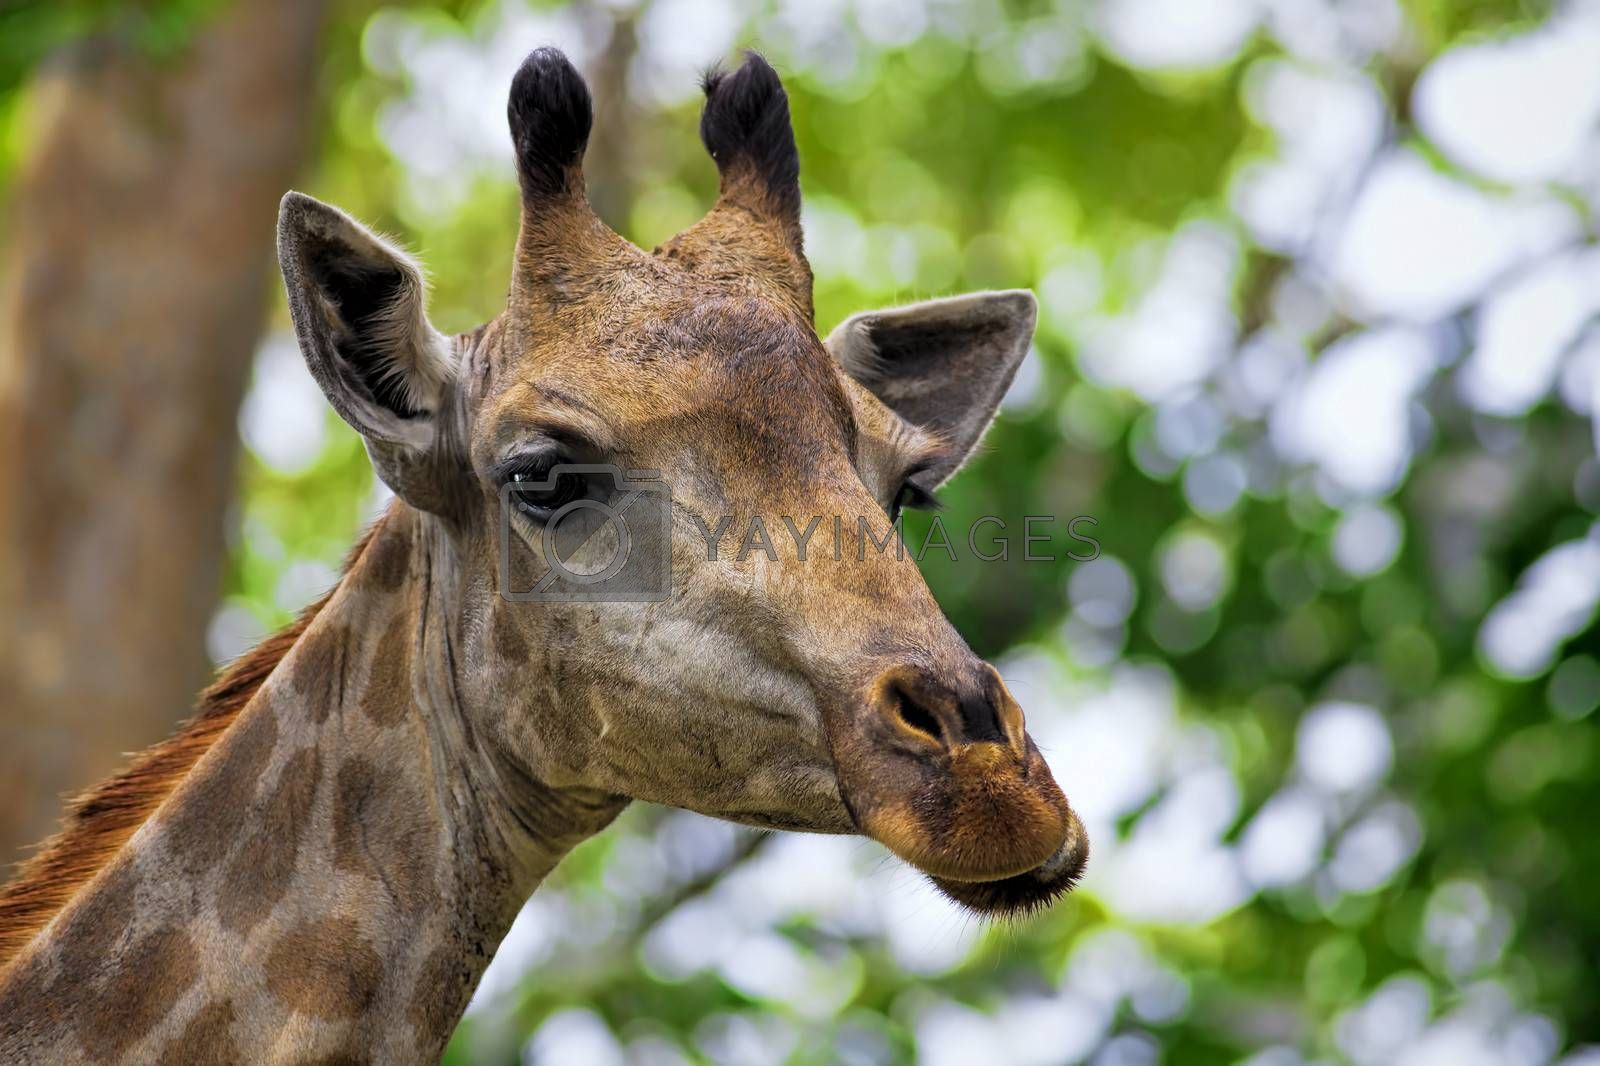 Giraffe head with neck on green background